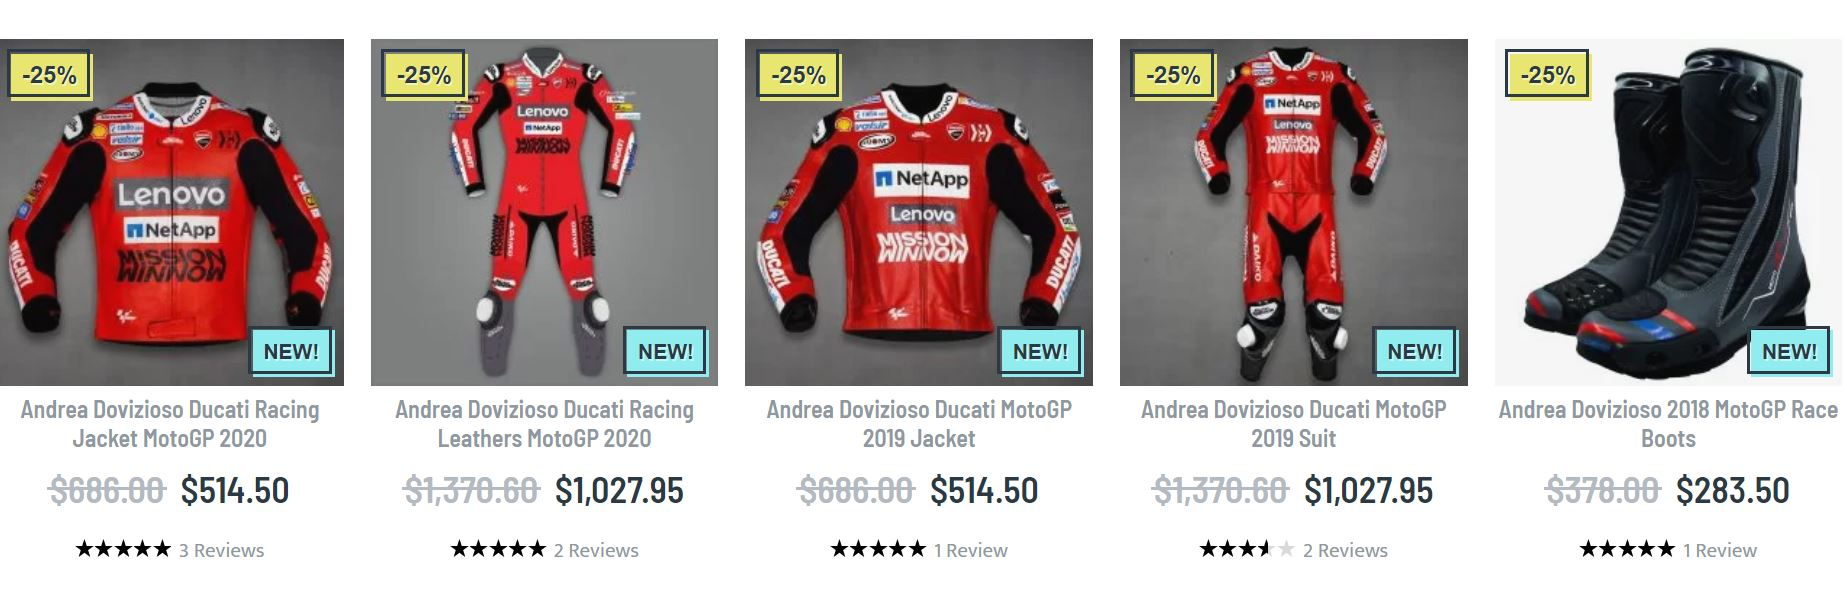 Andrea Dovizioso clothing